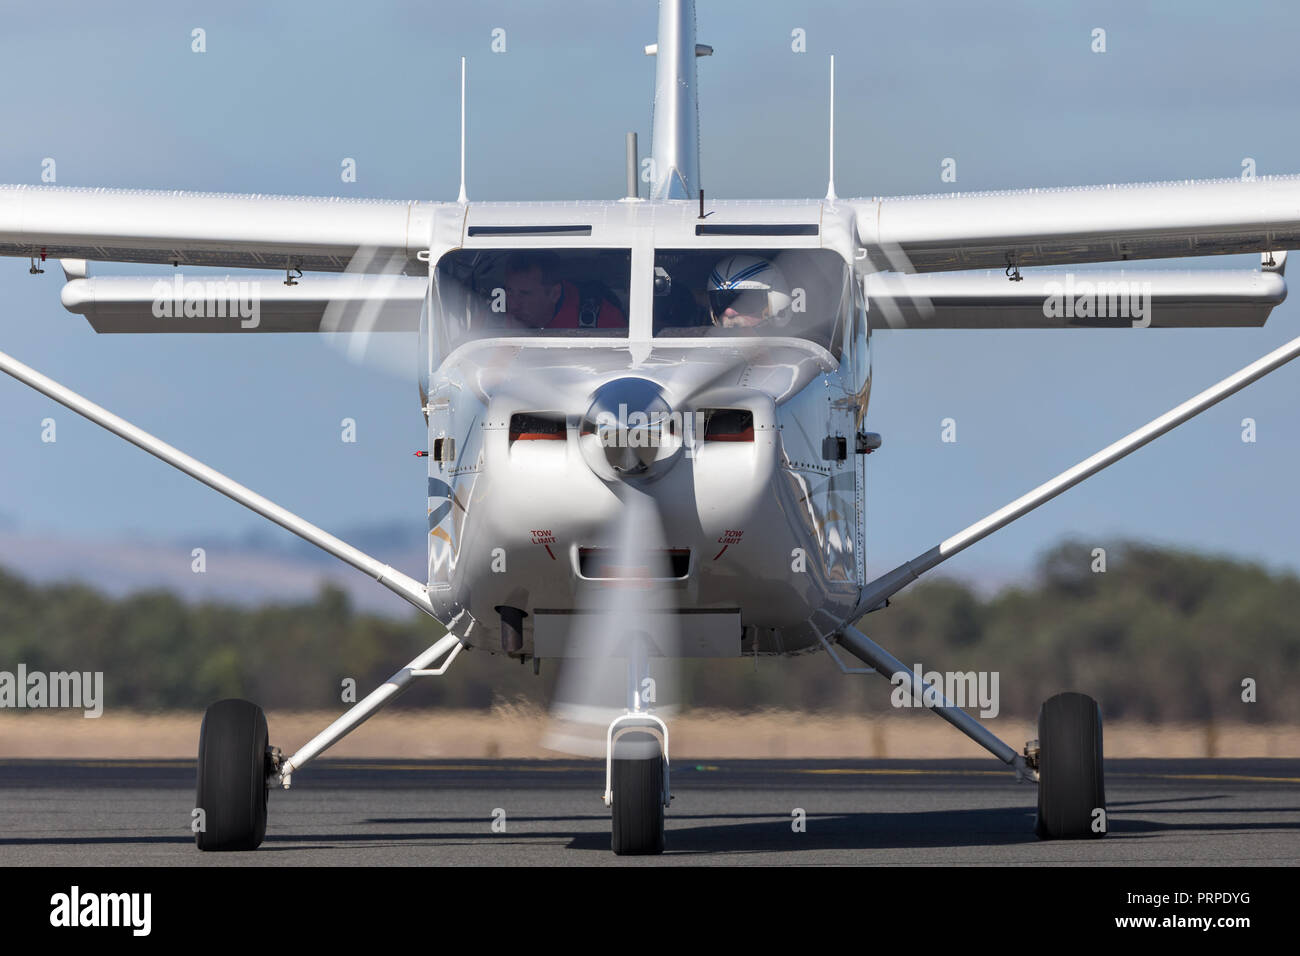 Gippsland Aeronautics GA8 Airvan (VH-SXK) single engine utility aircraft being used for skydiving operations. - Stock Image